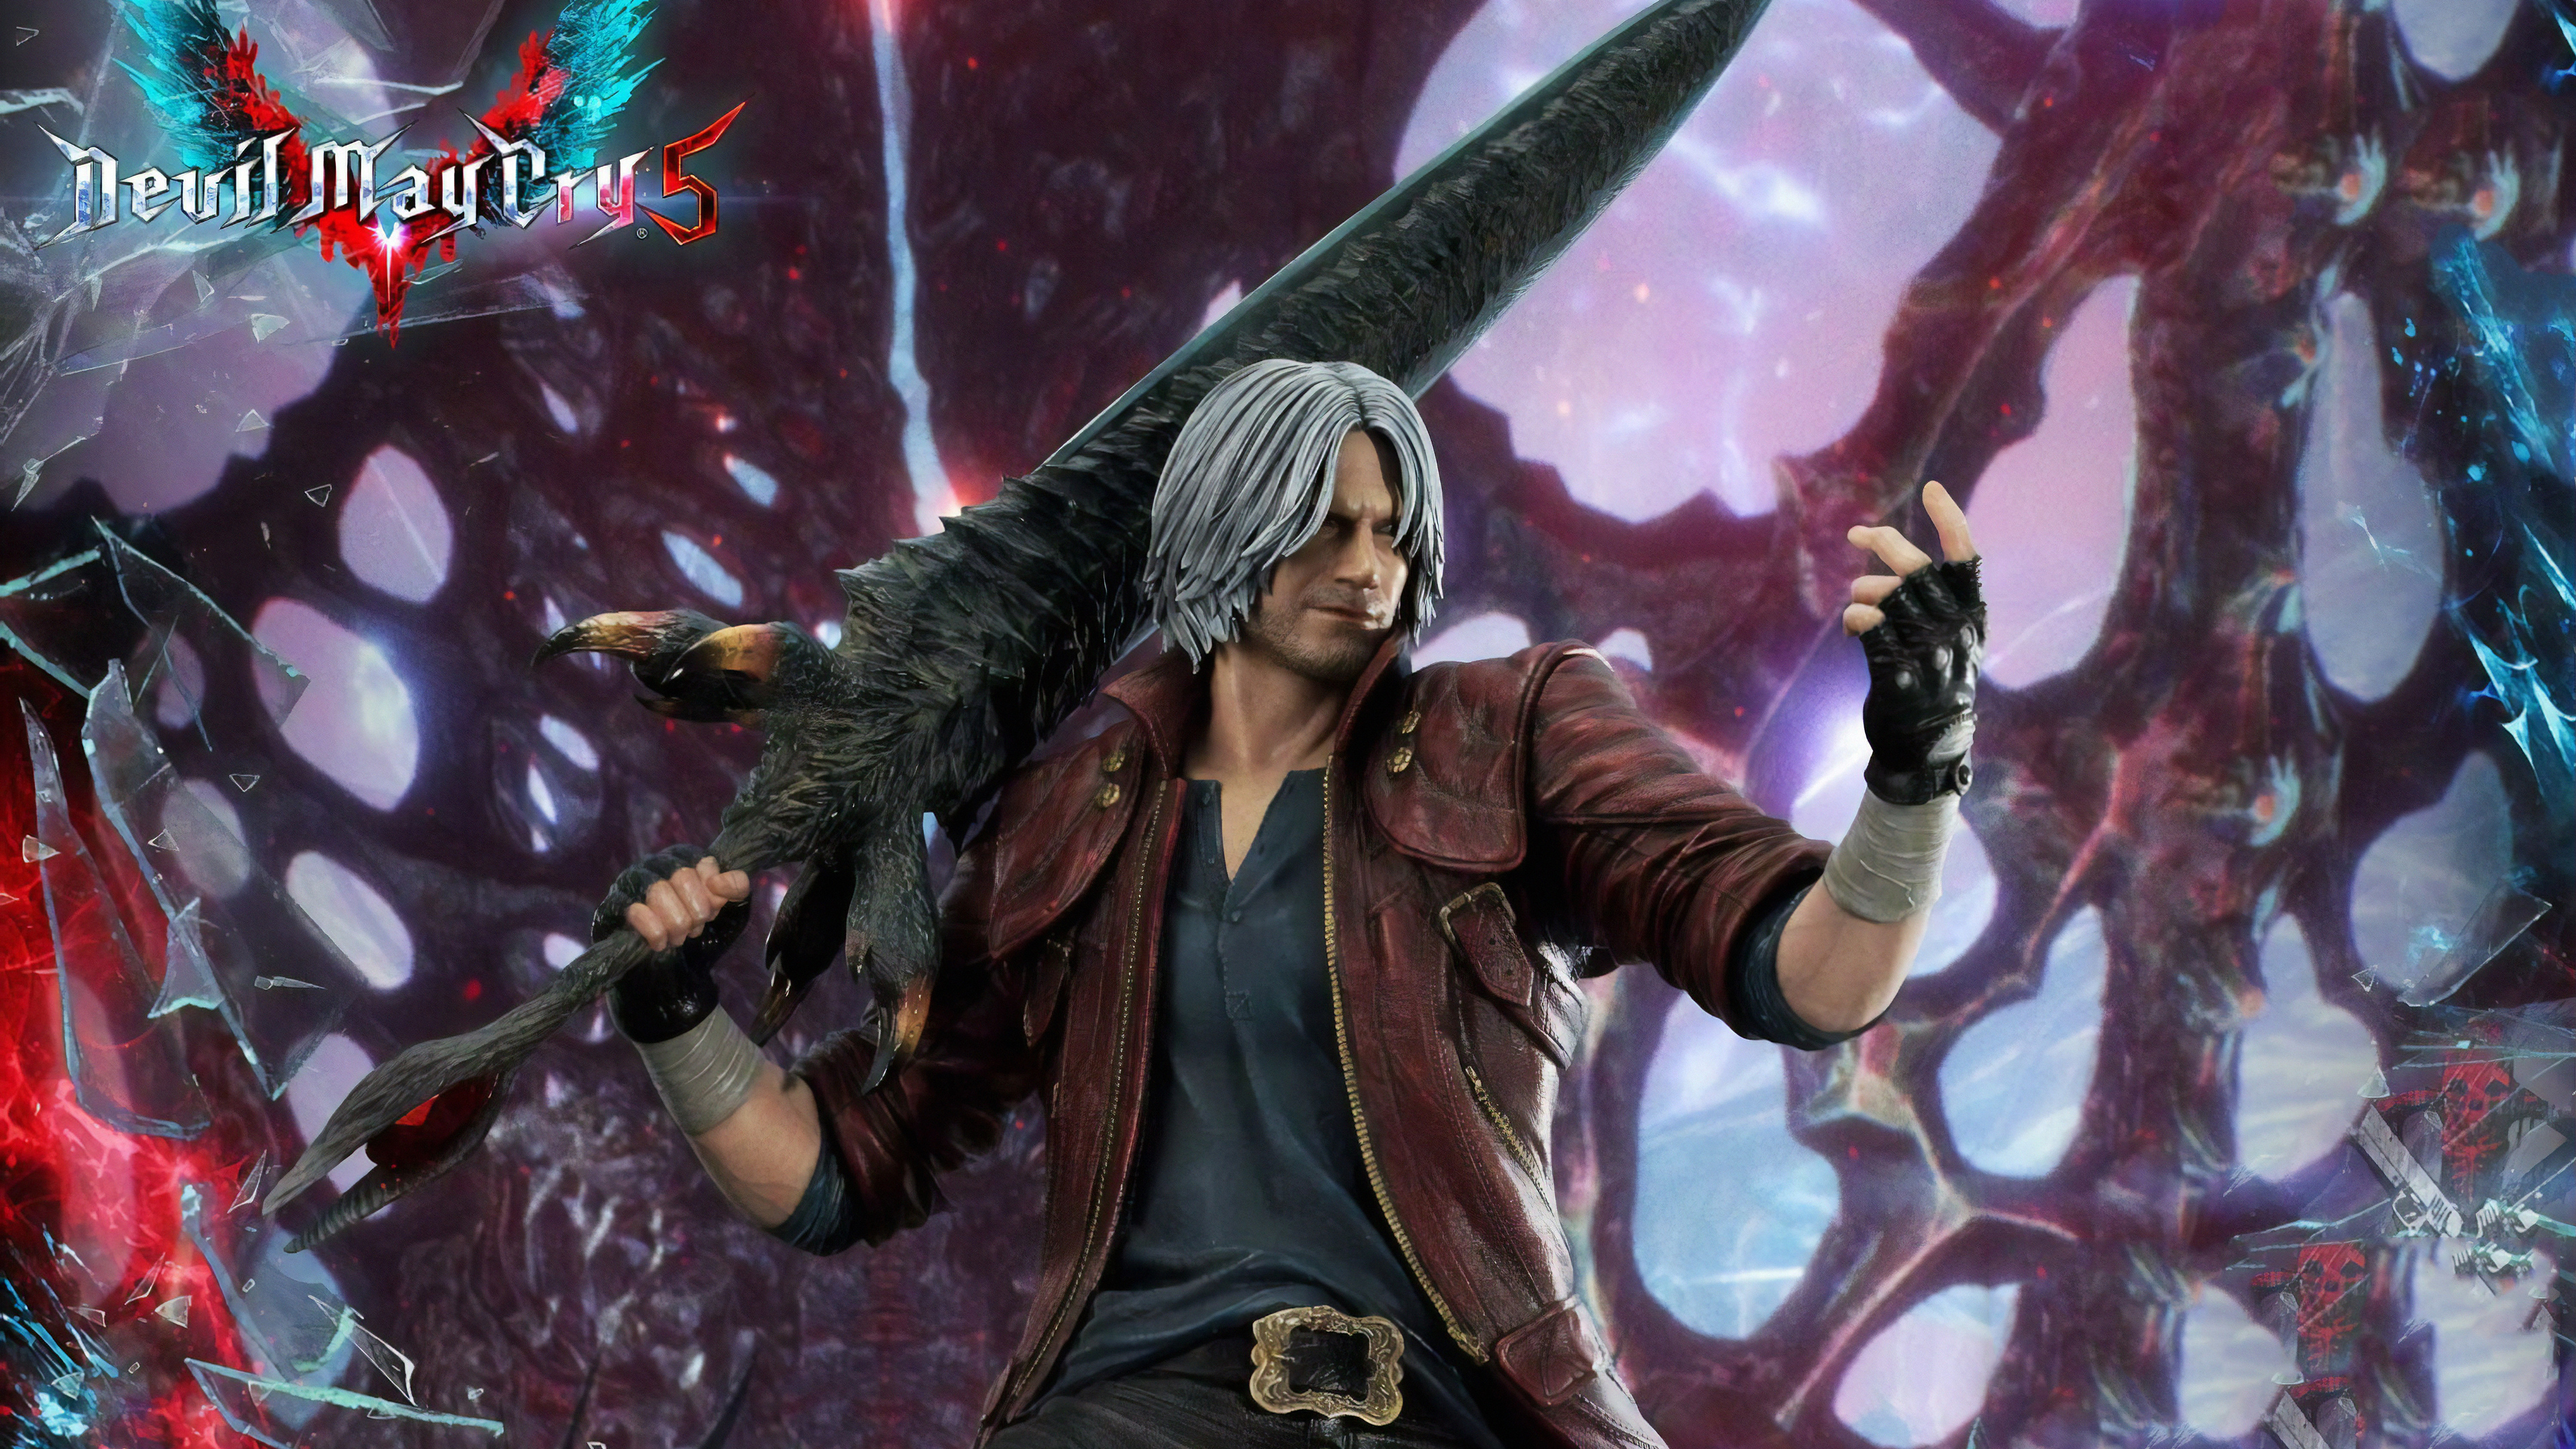 Wallpaper 4k Devil May Cry 2019 2019 Games Wallpapers 4k